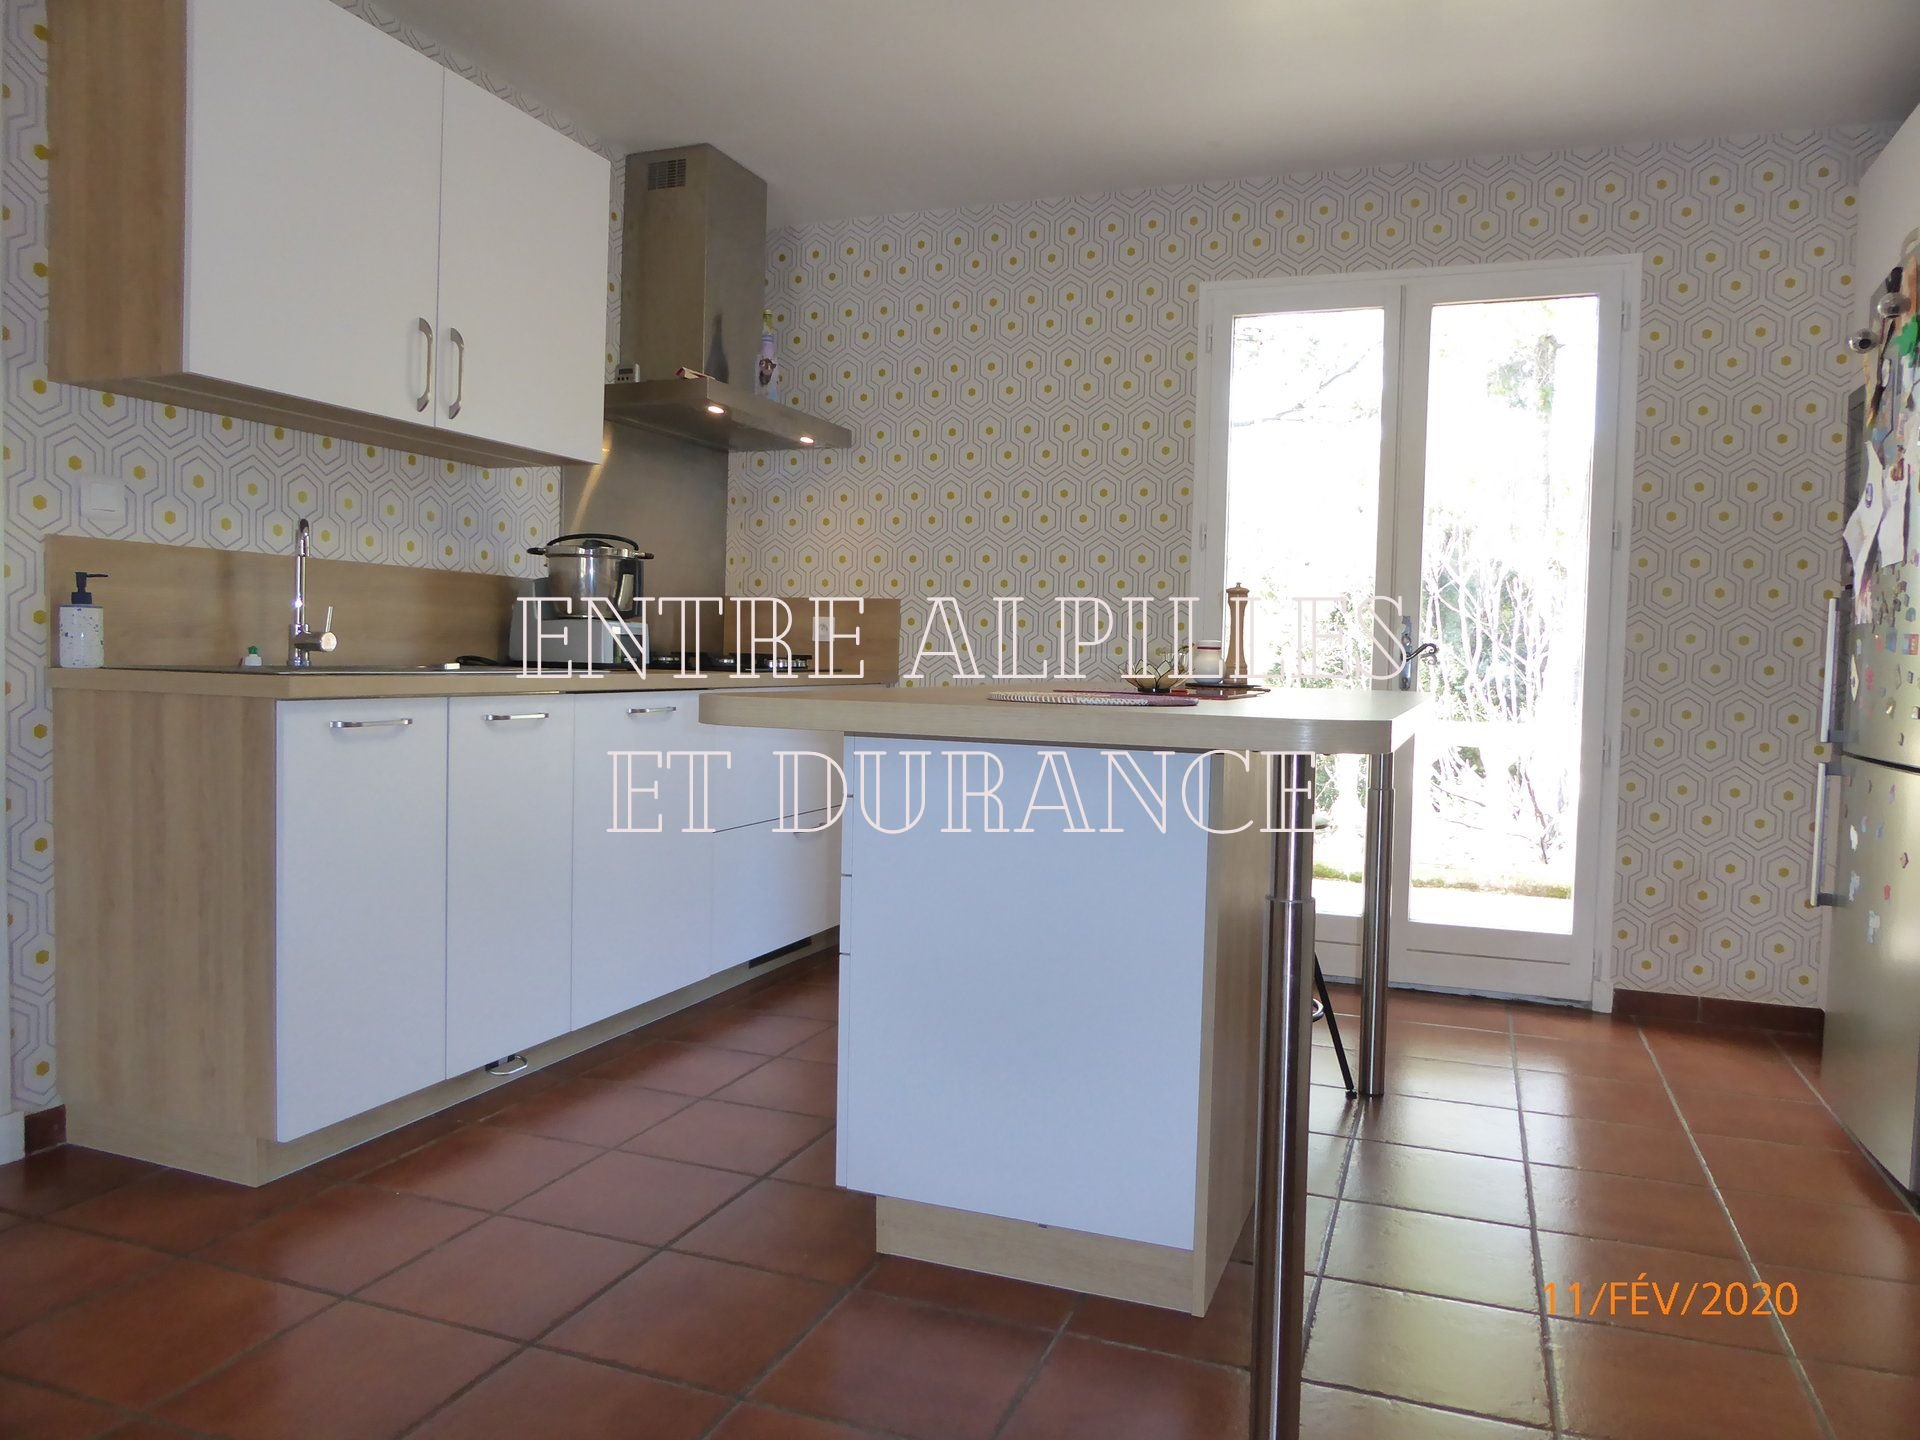 AVIGNON 5 km privileged area - PLAIN HOUSE VILLA 4 BEDROOM APARTMENT with GROUND of 2600